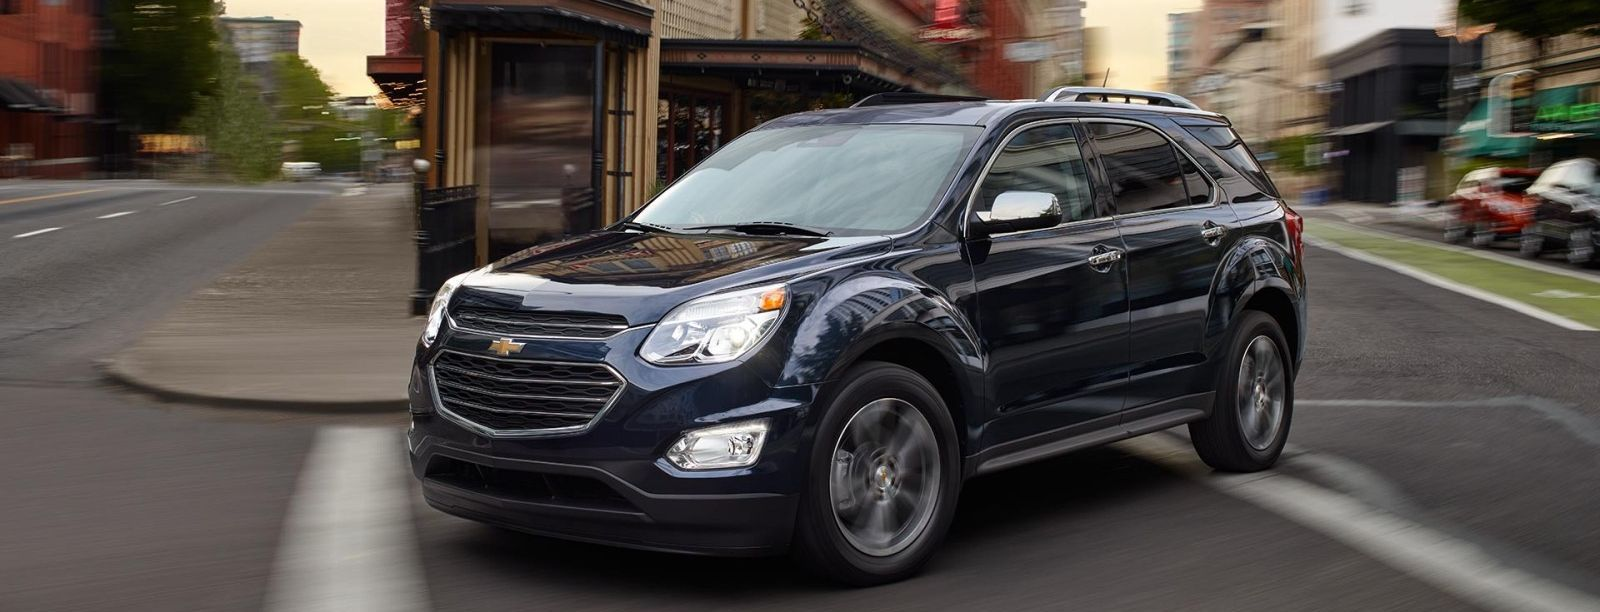 Equinox brown chevy equinox 2017 Chevy Equinox for Sale near Norman, OK - David Stanley Chevy